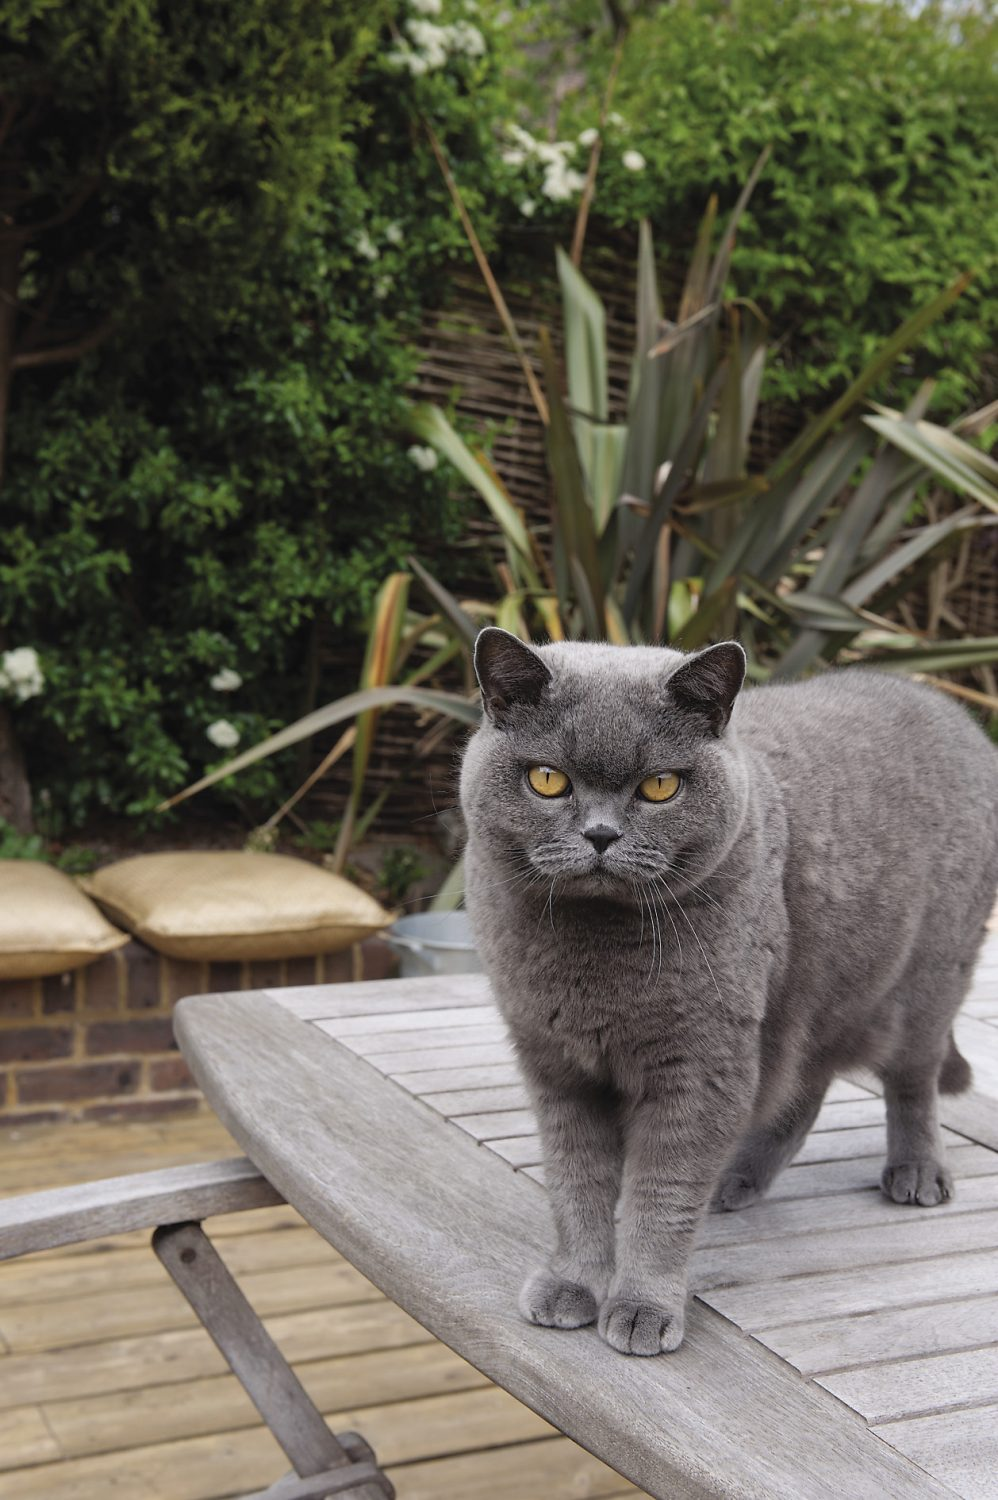 Zanzibar strikes a pose on the garden table